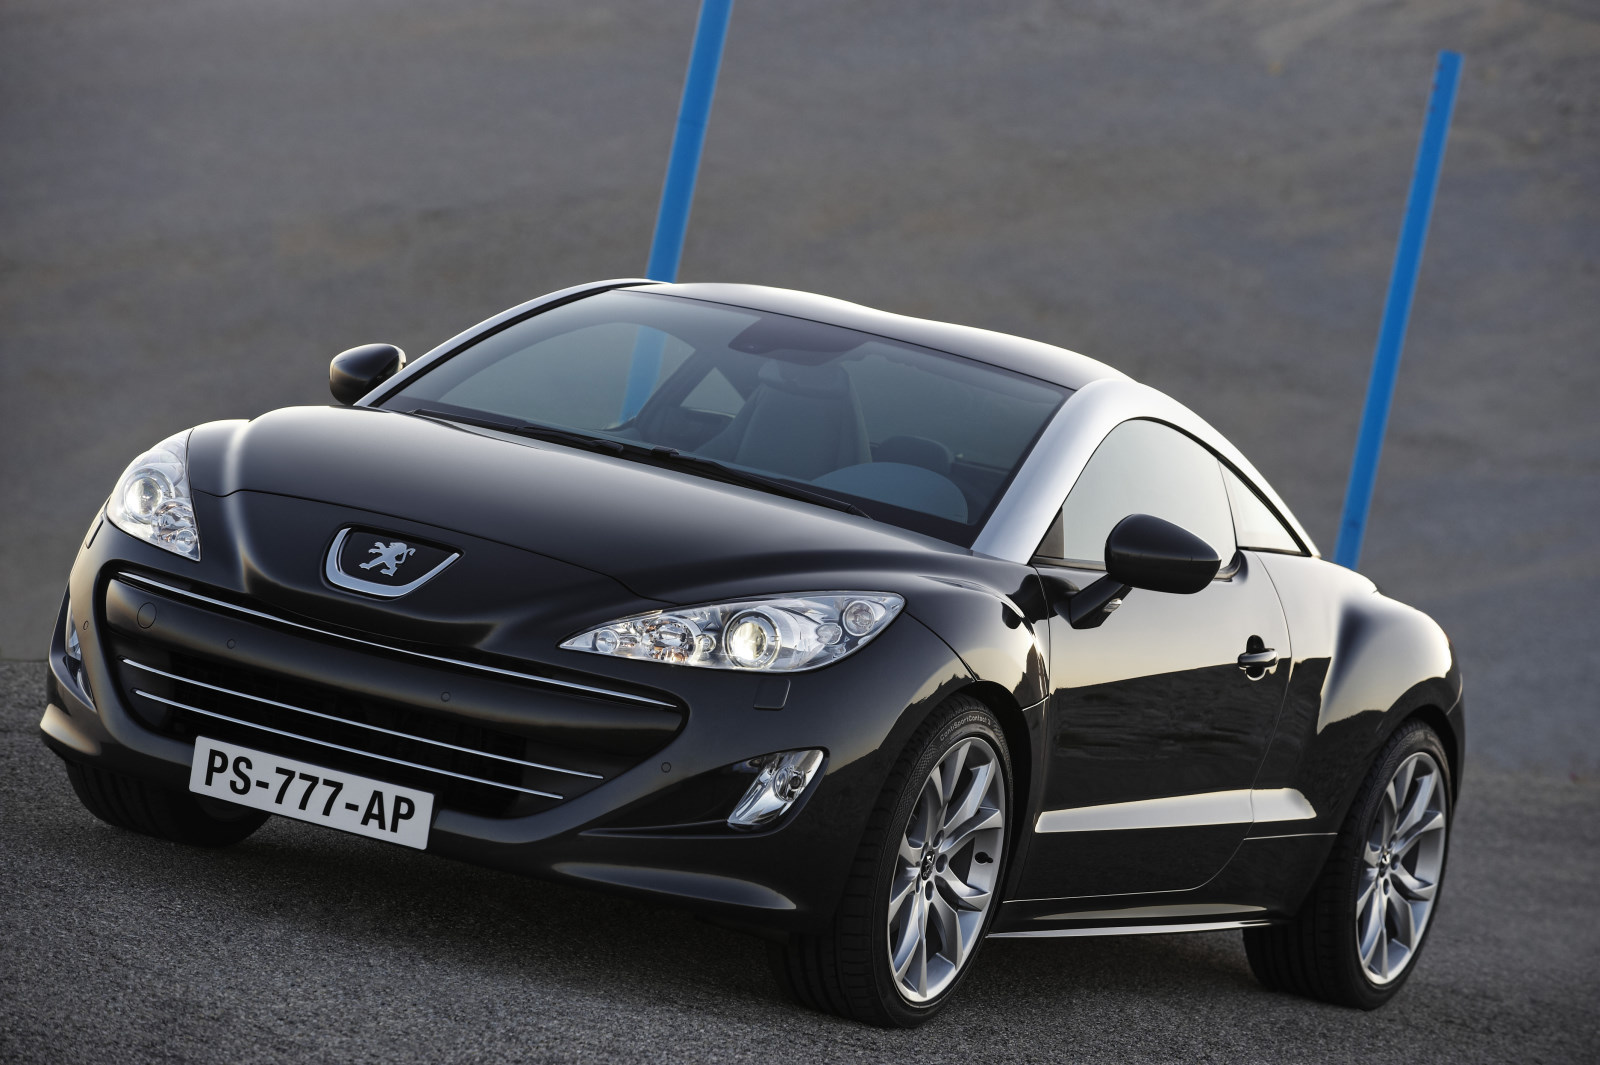 el peugeot rcz llega a argentina super coches el blog del motor. Black Bedroom Furniture Sets. Home Design Ideas